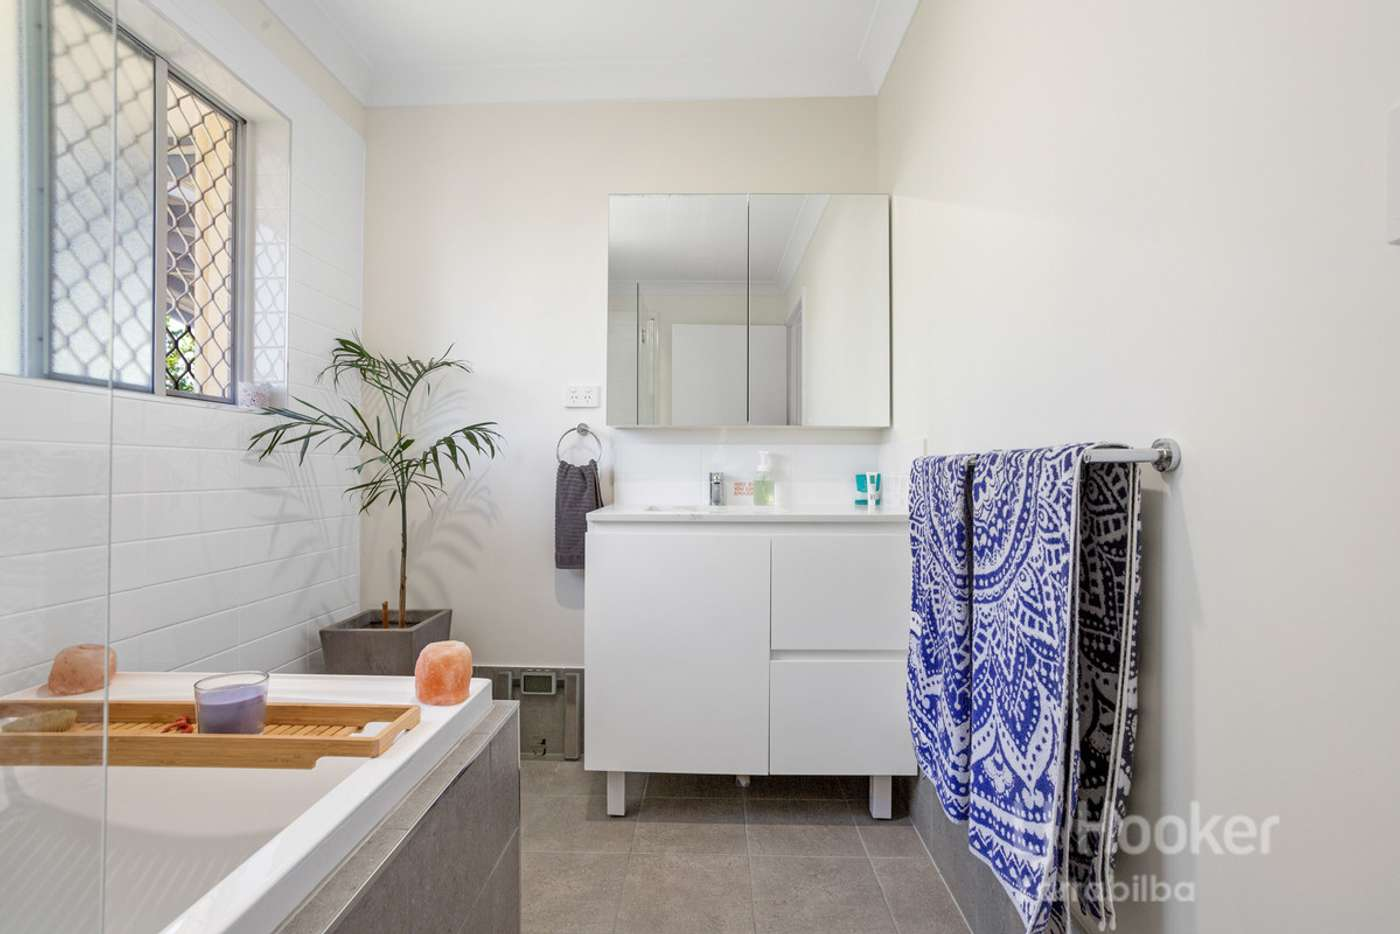 Sixth view of Homely house listing, 15 Jessie Crescent, Bethania QLD 4205